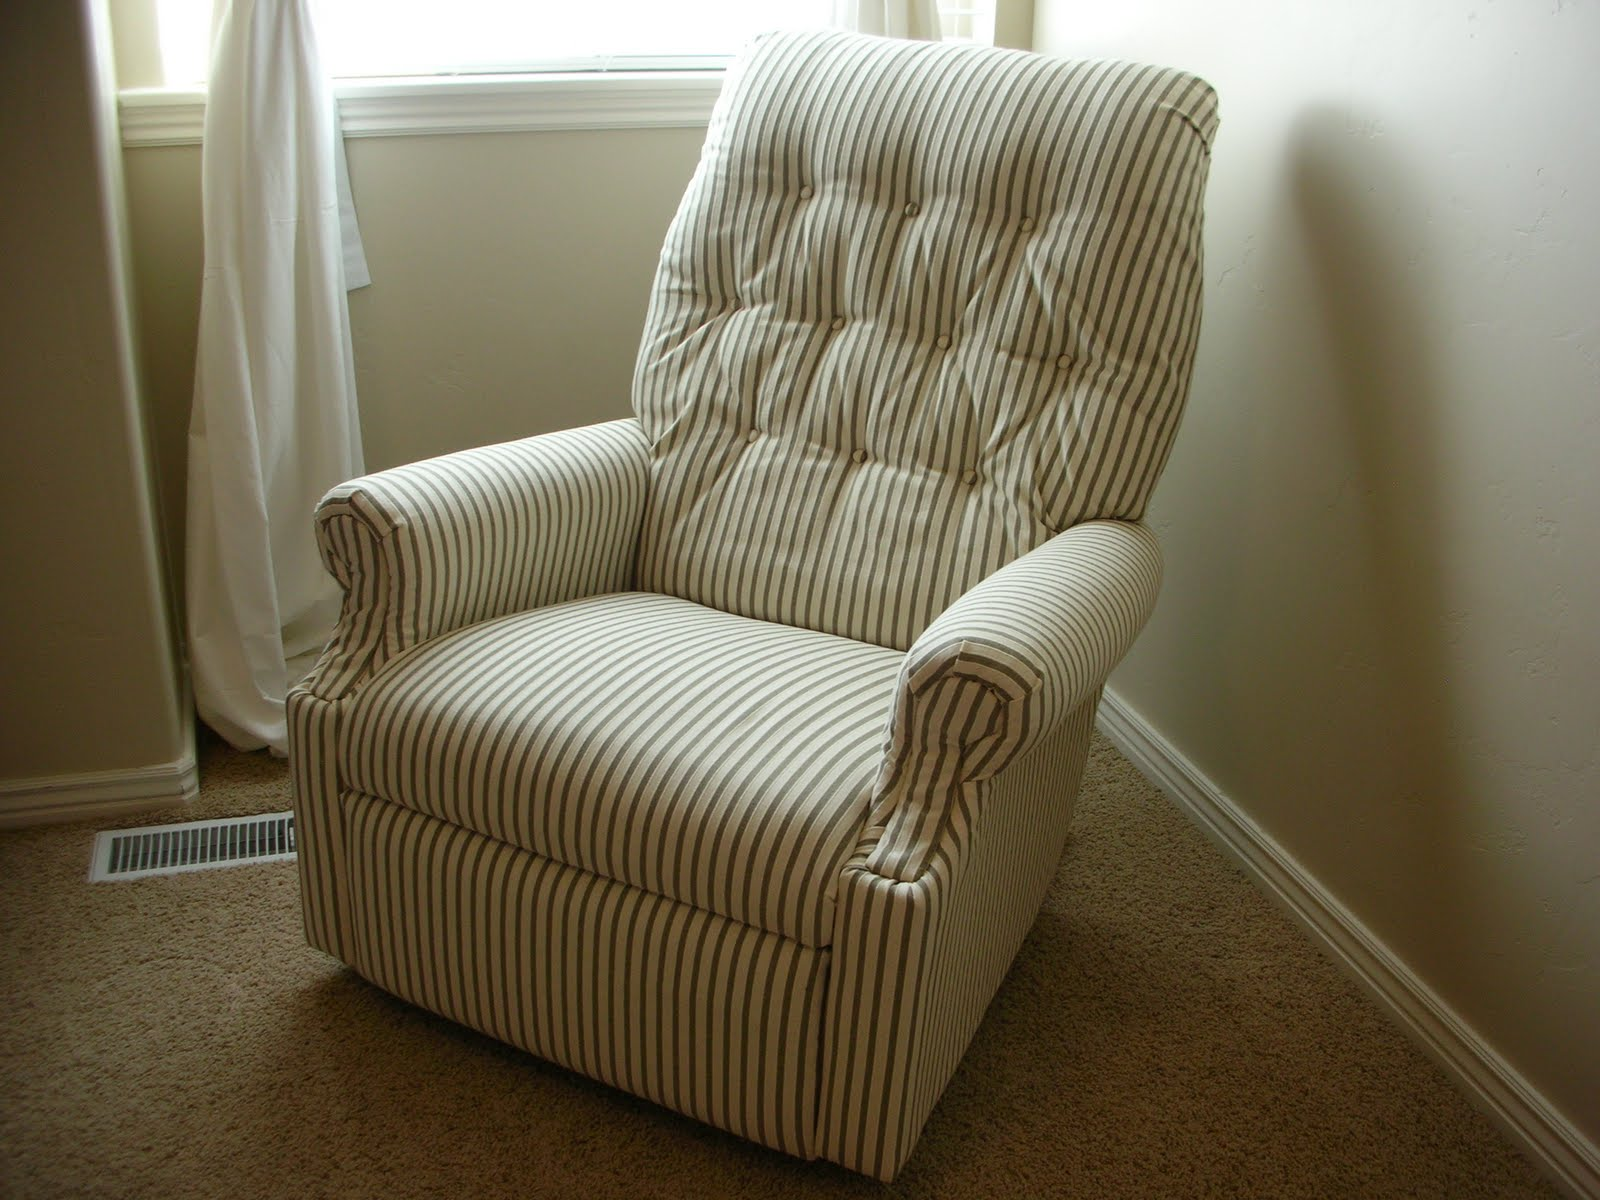 DIY Reupholster An Old La-Z-Boy Recliner : used lazy boy recliner - islam-shia.org